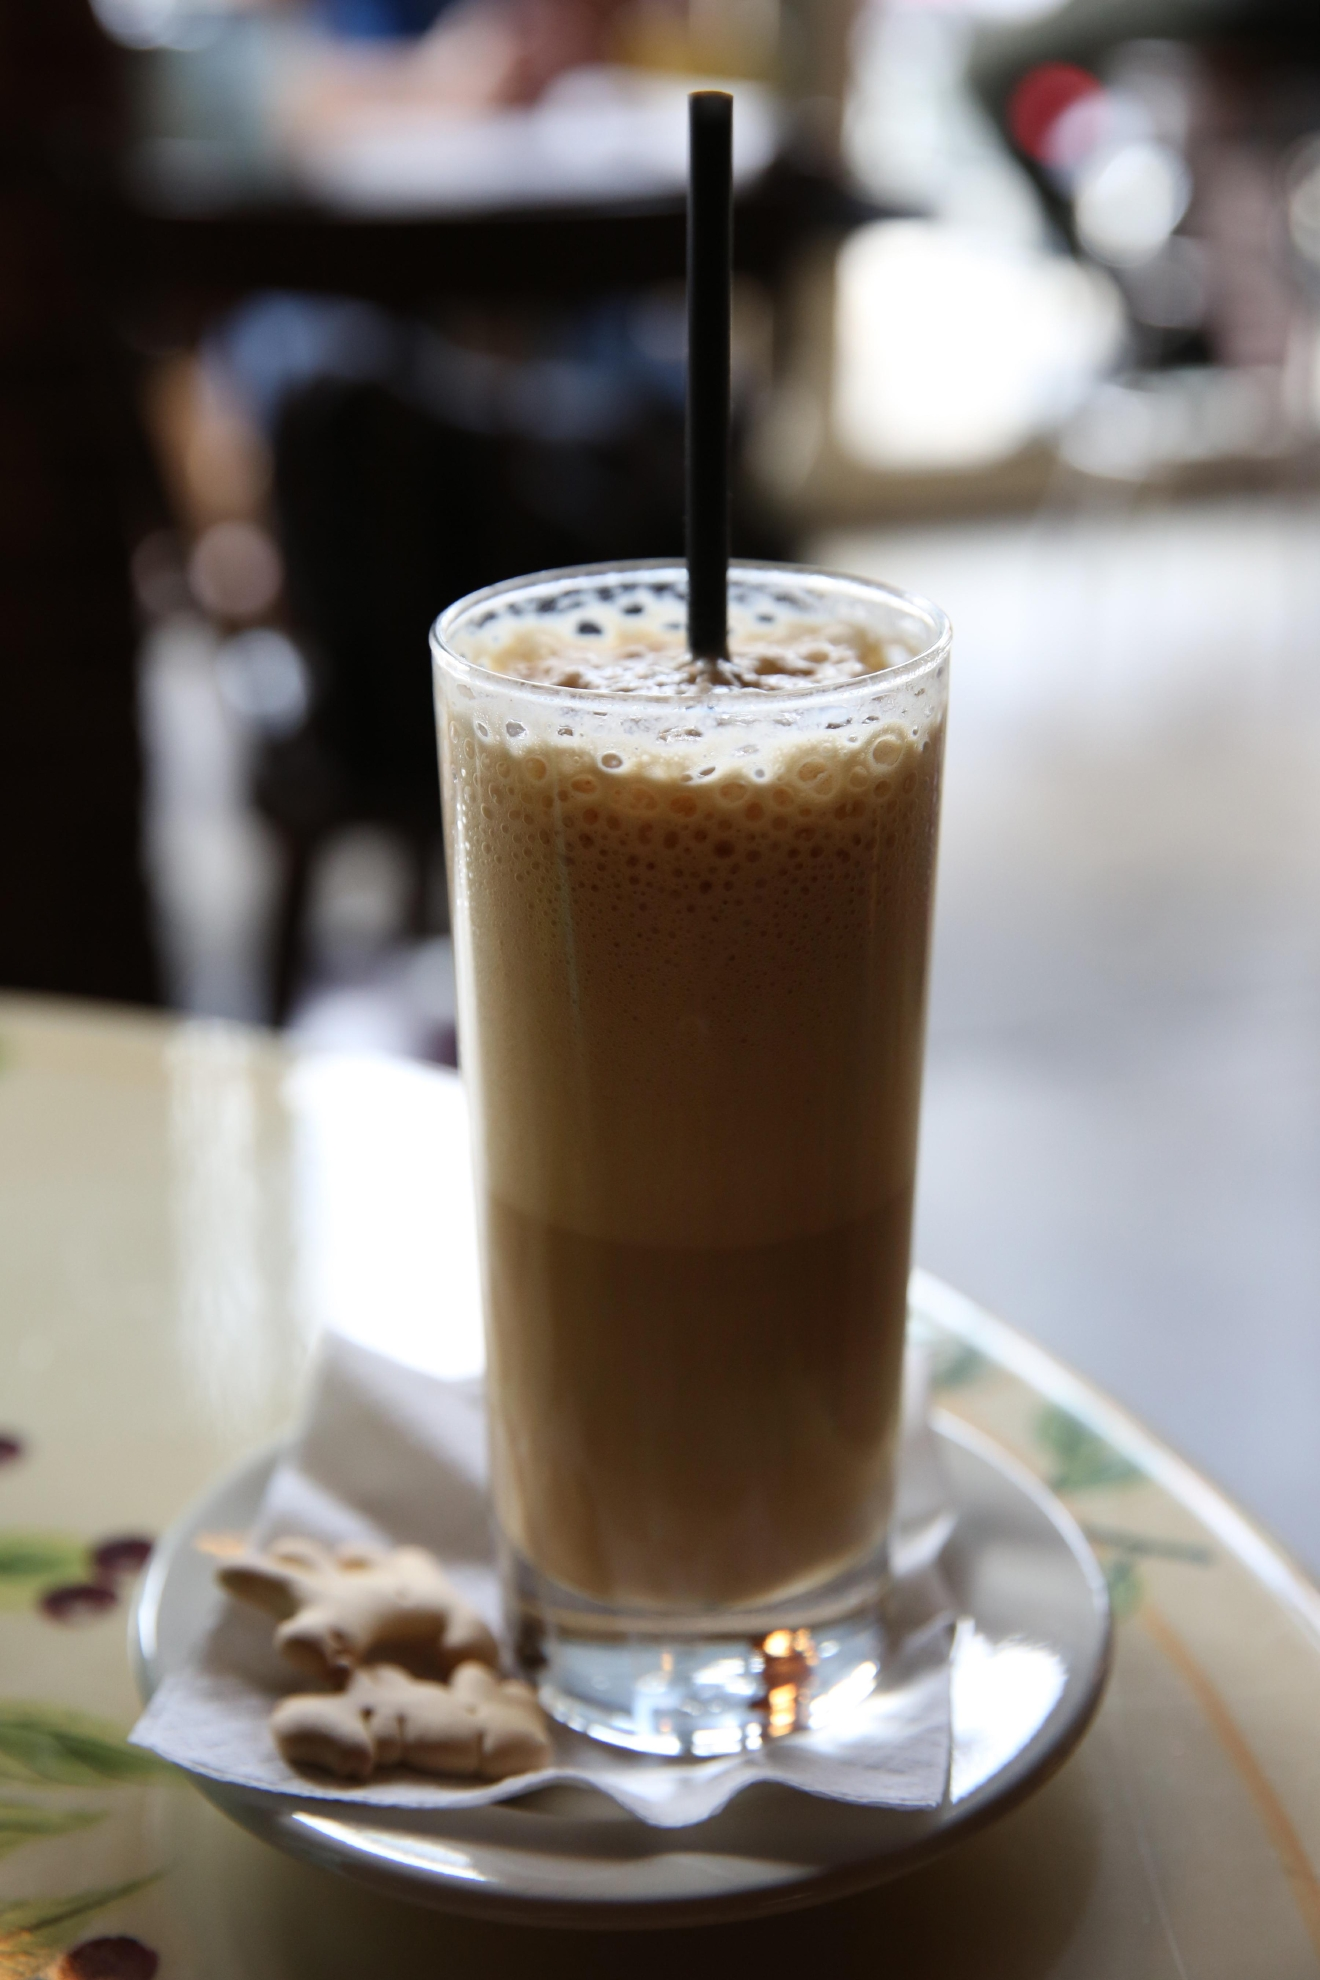 The hazelnut shakerato at Tryst is really delicious and great fuel for thrifting. (Amanda Andrade-Rhoades/DC Refined)